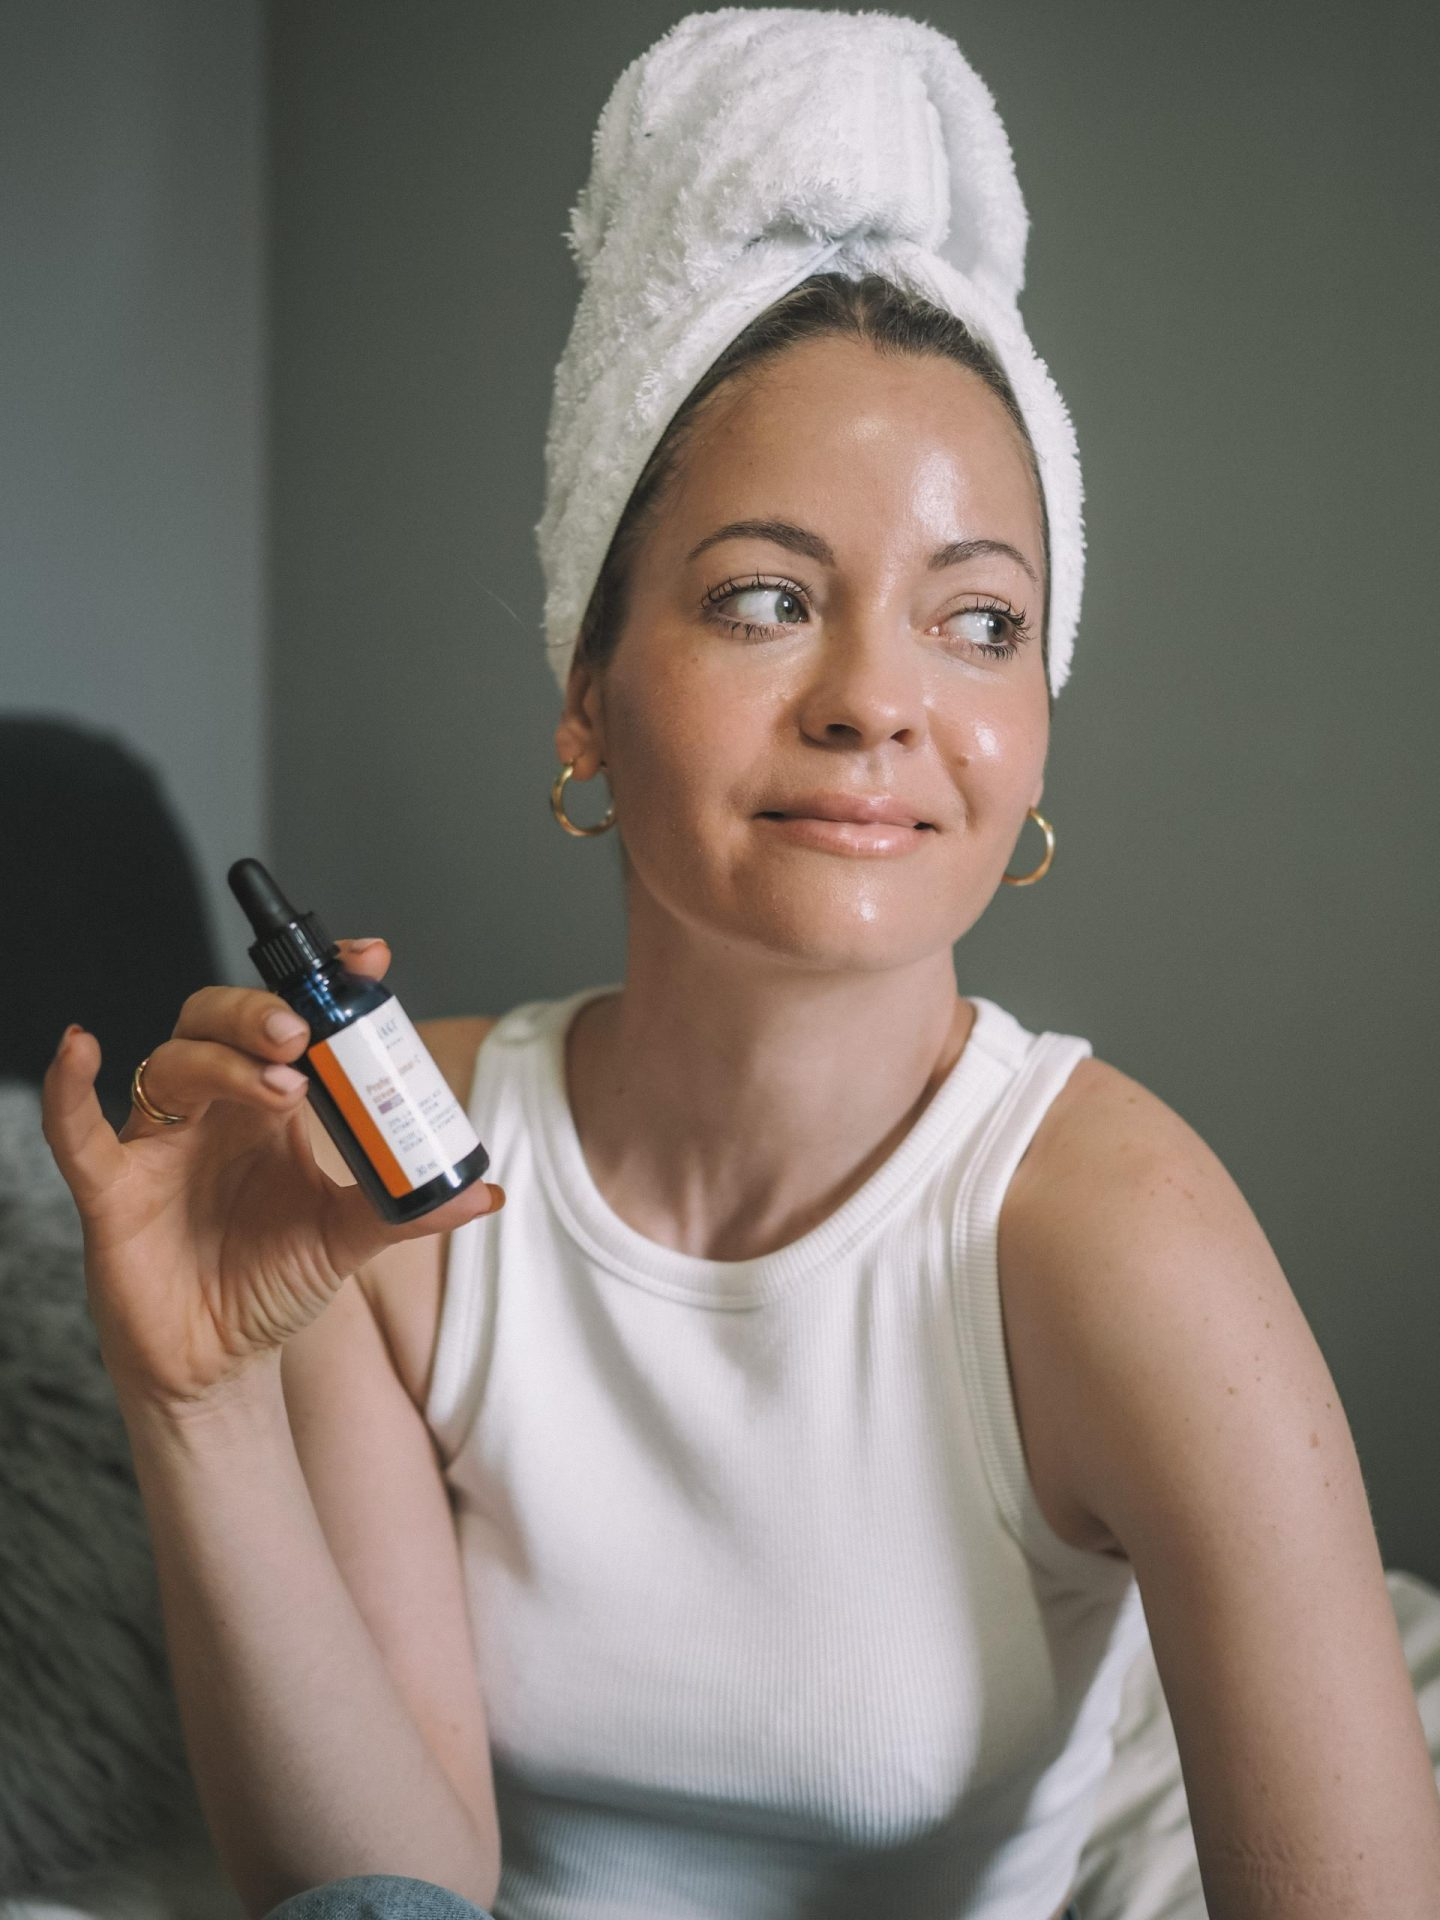 The Best Vitamin C Serums for Brighter Skin